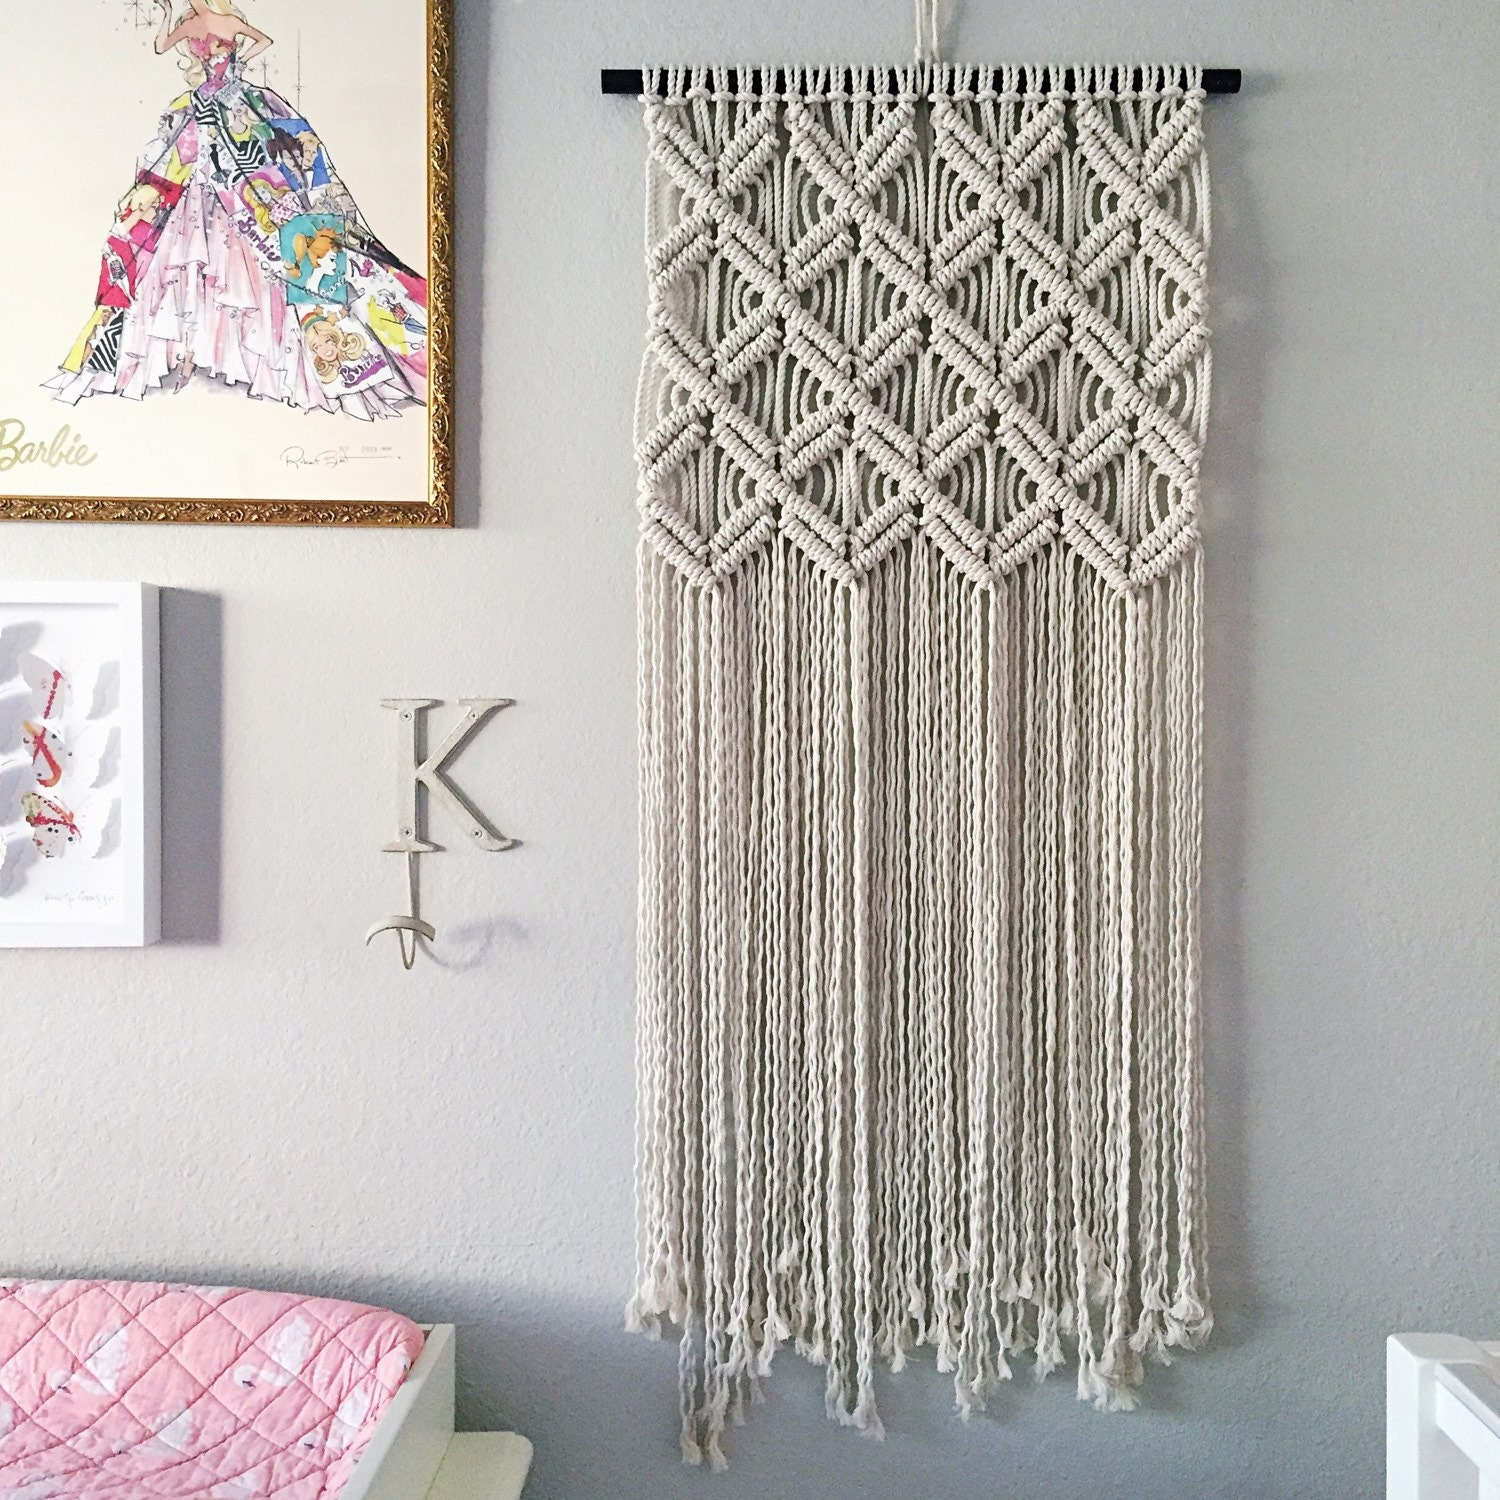 macrame wall hanging kit macrame kit macrame wall hanging kit diy gift kit by 6218